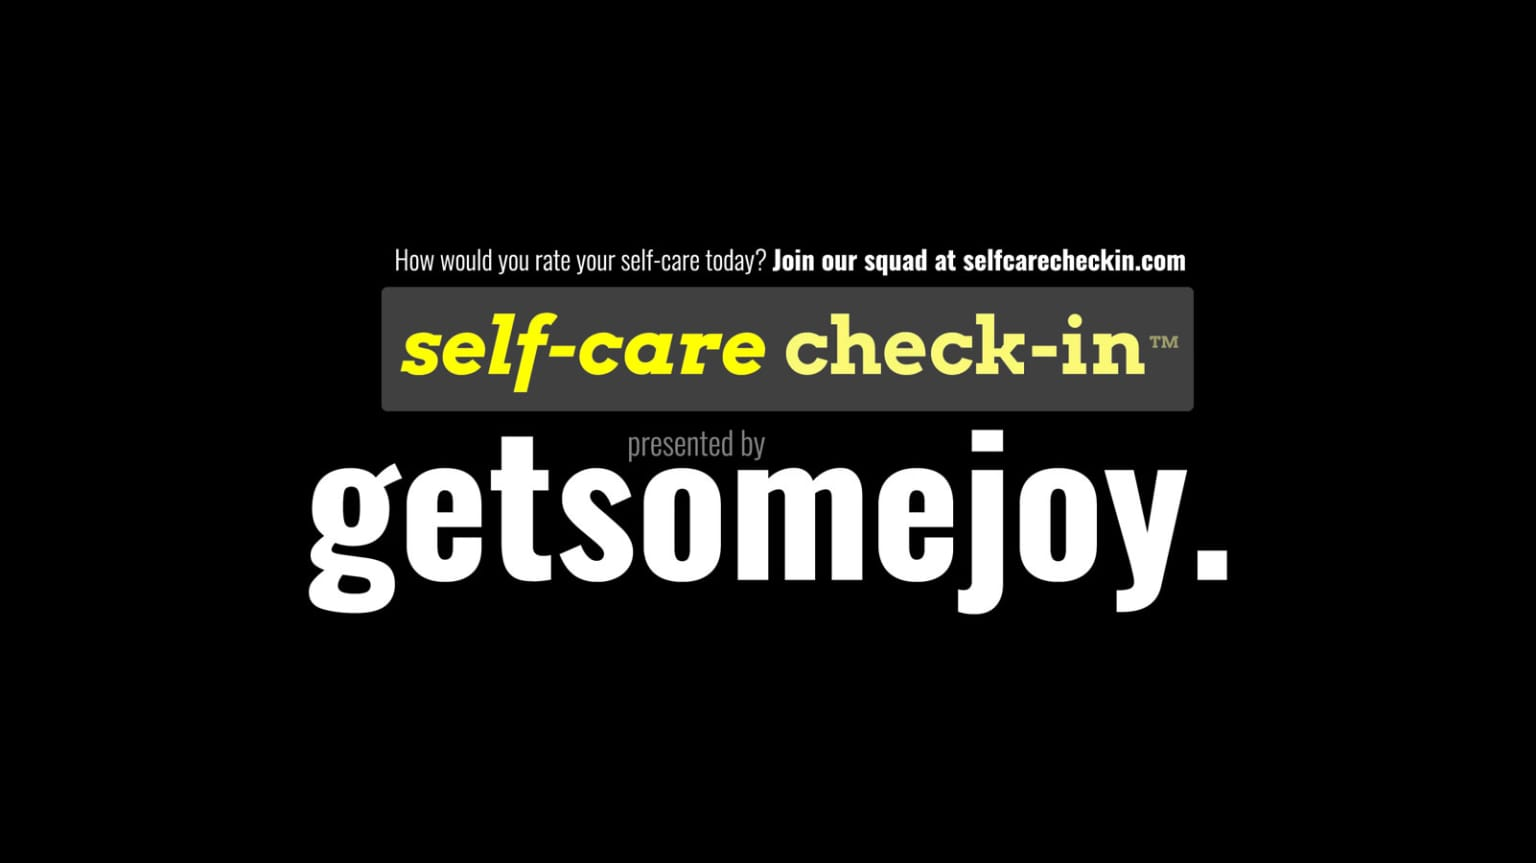 Website, Branding & Technology Strategy for #SELFCARECHECKIN Content Campaign